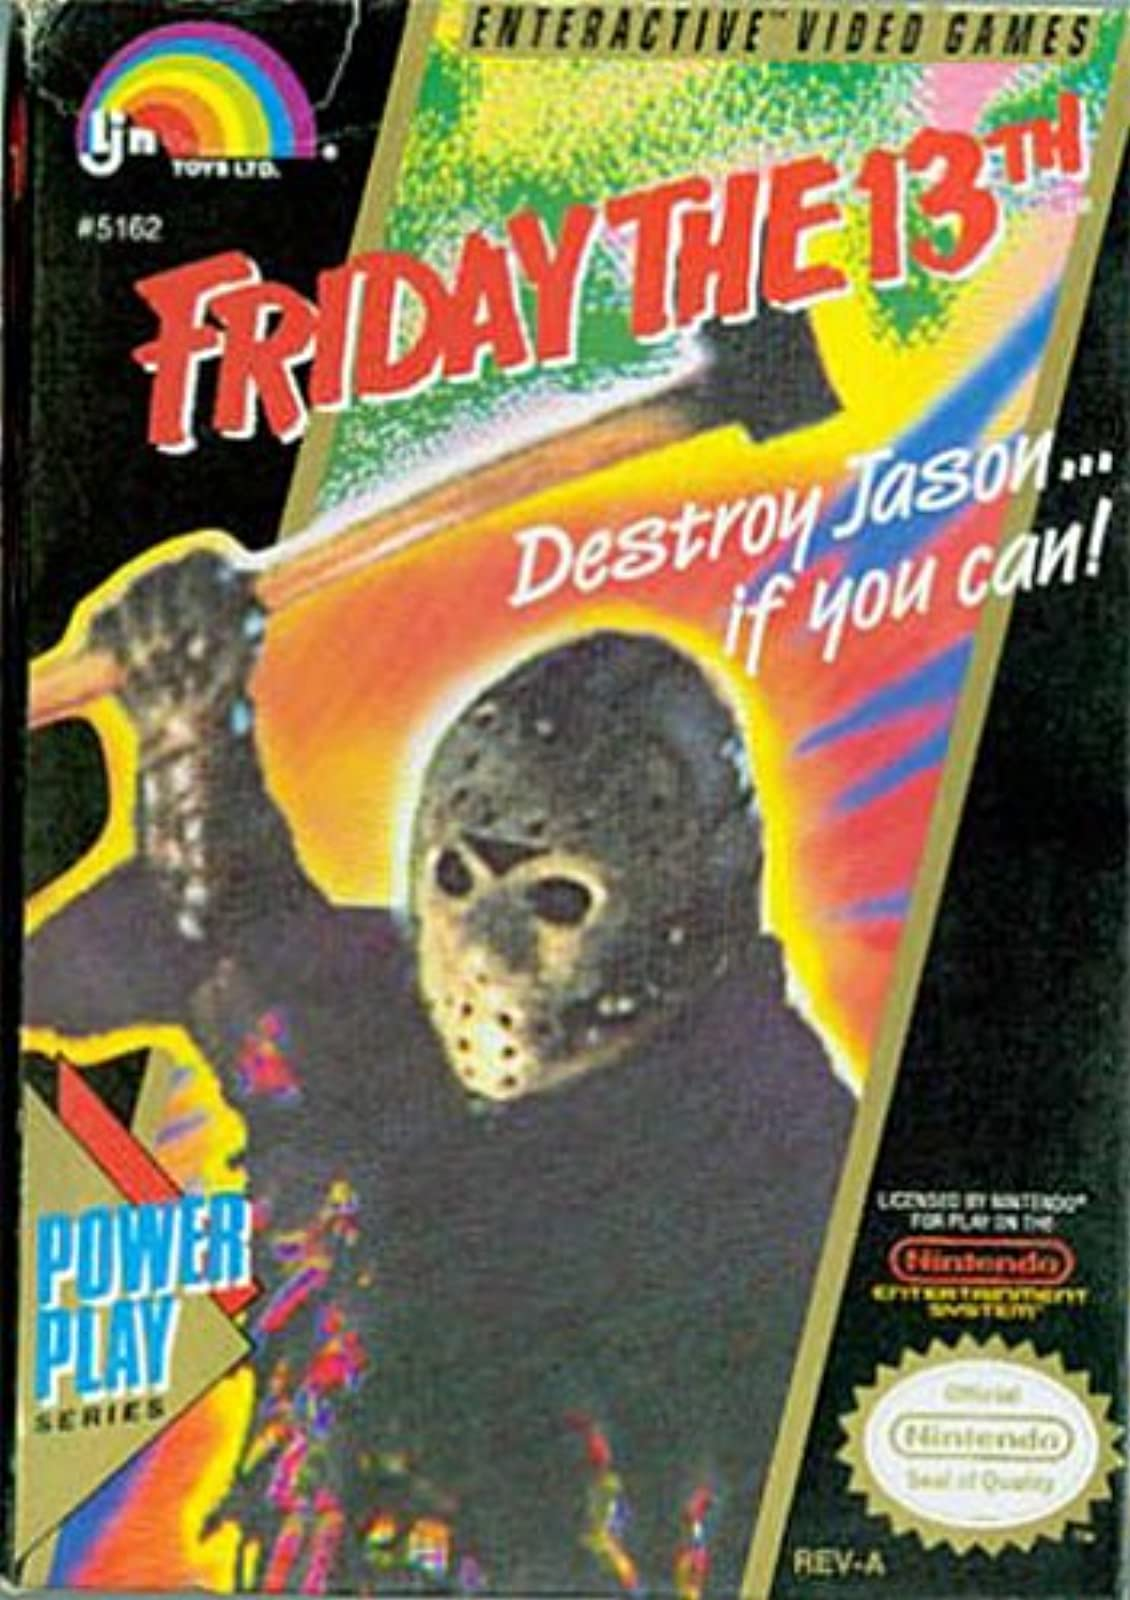 Friday The 13th For Nintendo NES Vintage